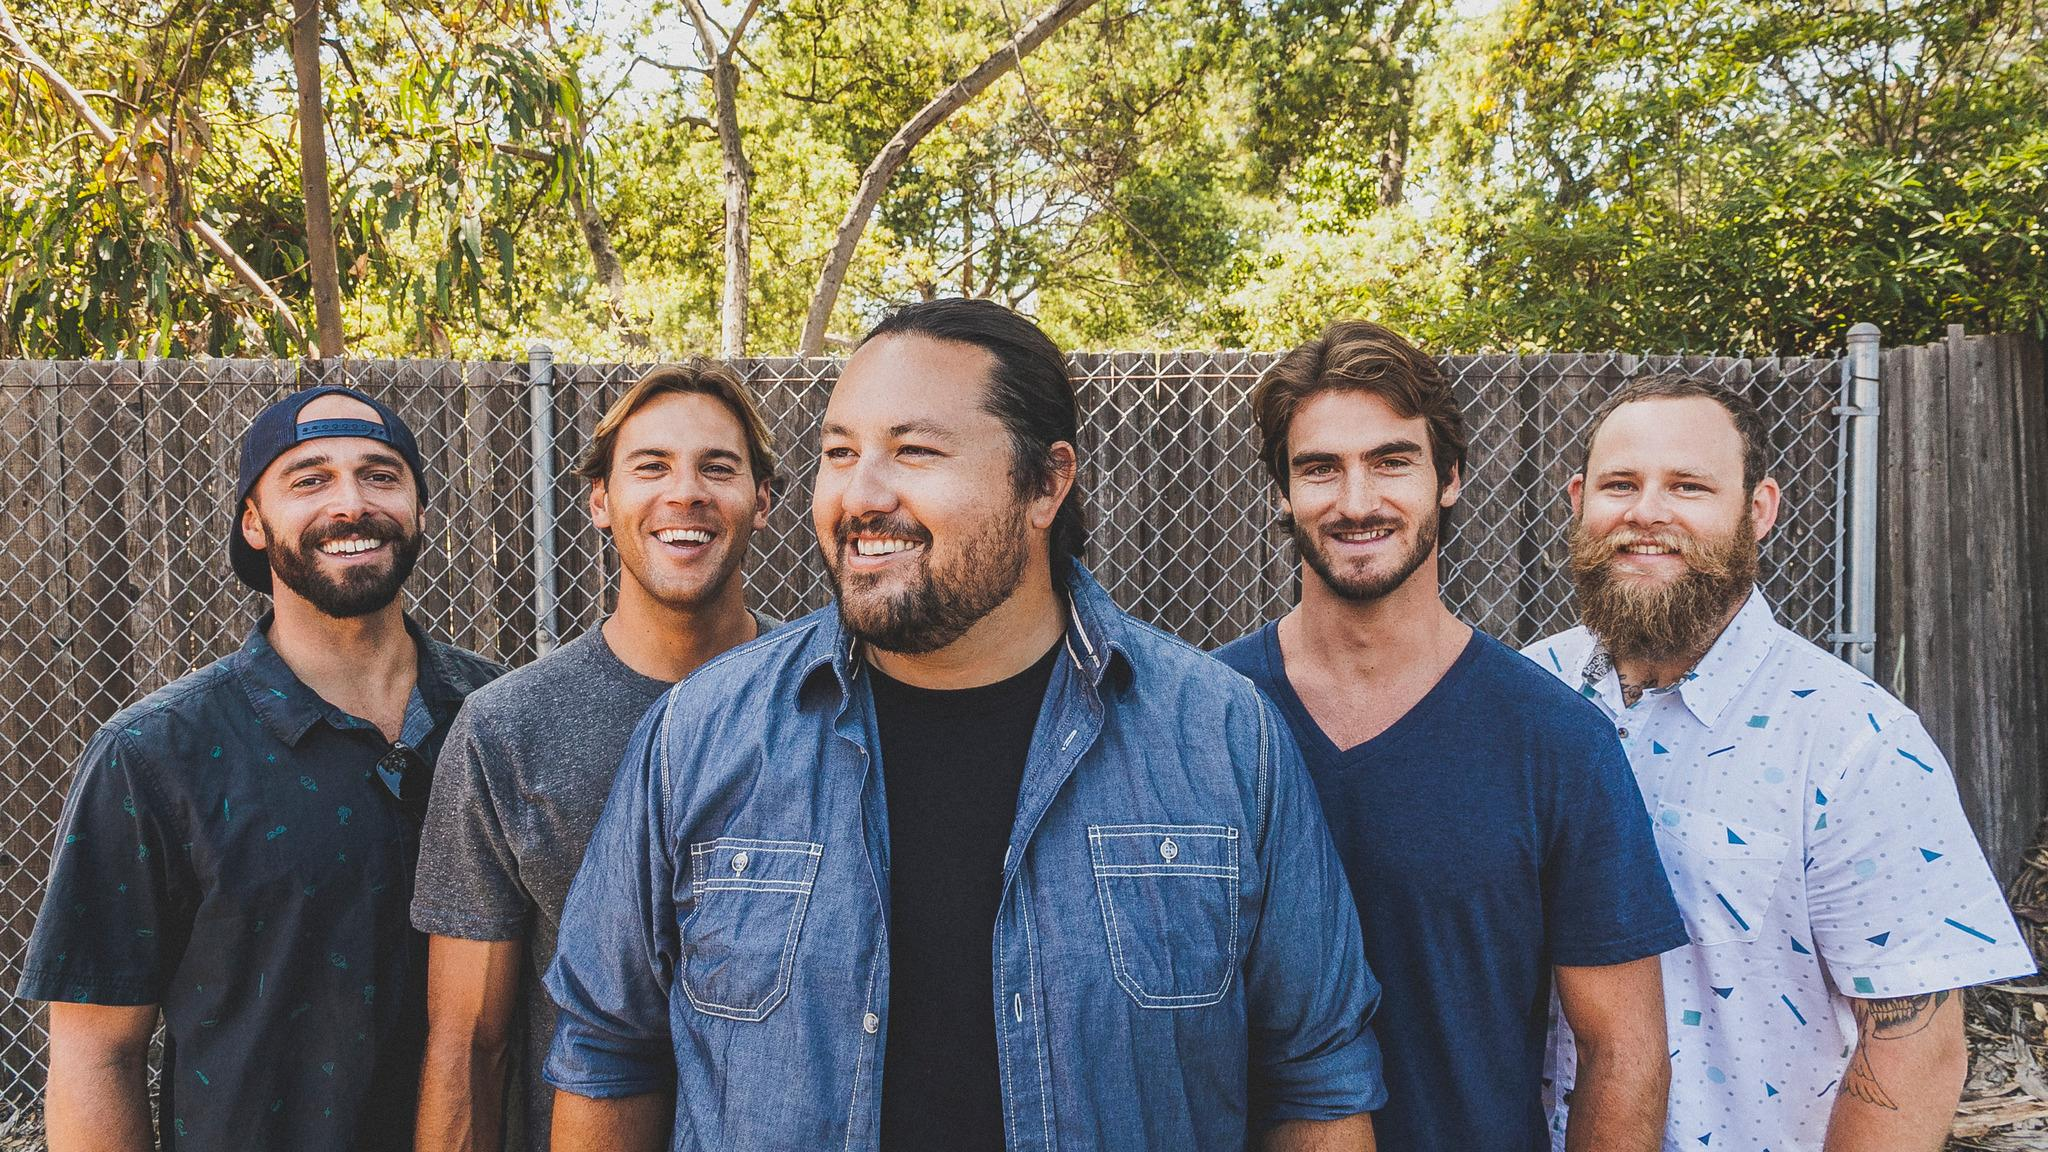 SORRY, THIS EVENT IS NO LONGER ACTIVE<br>Iration - Meet & Greet Packages at Granada - Lawrence, KS 66044